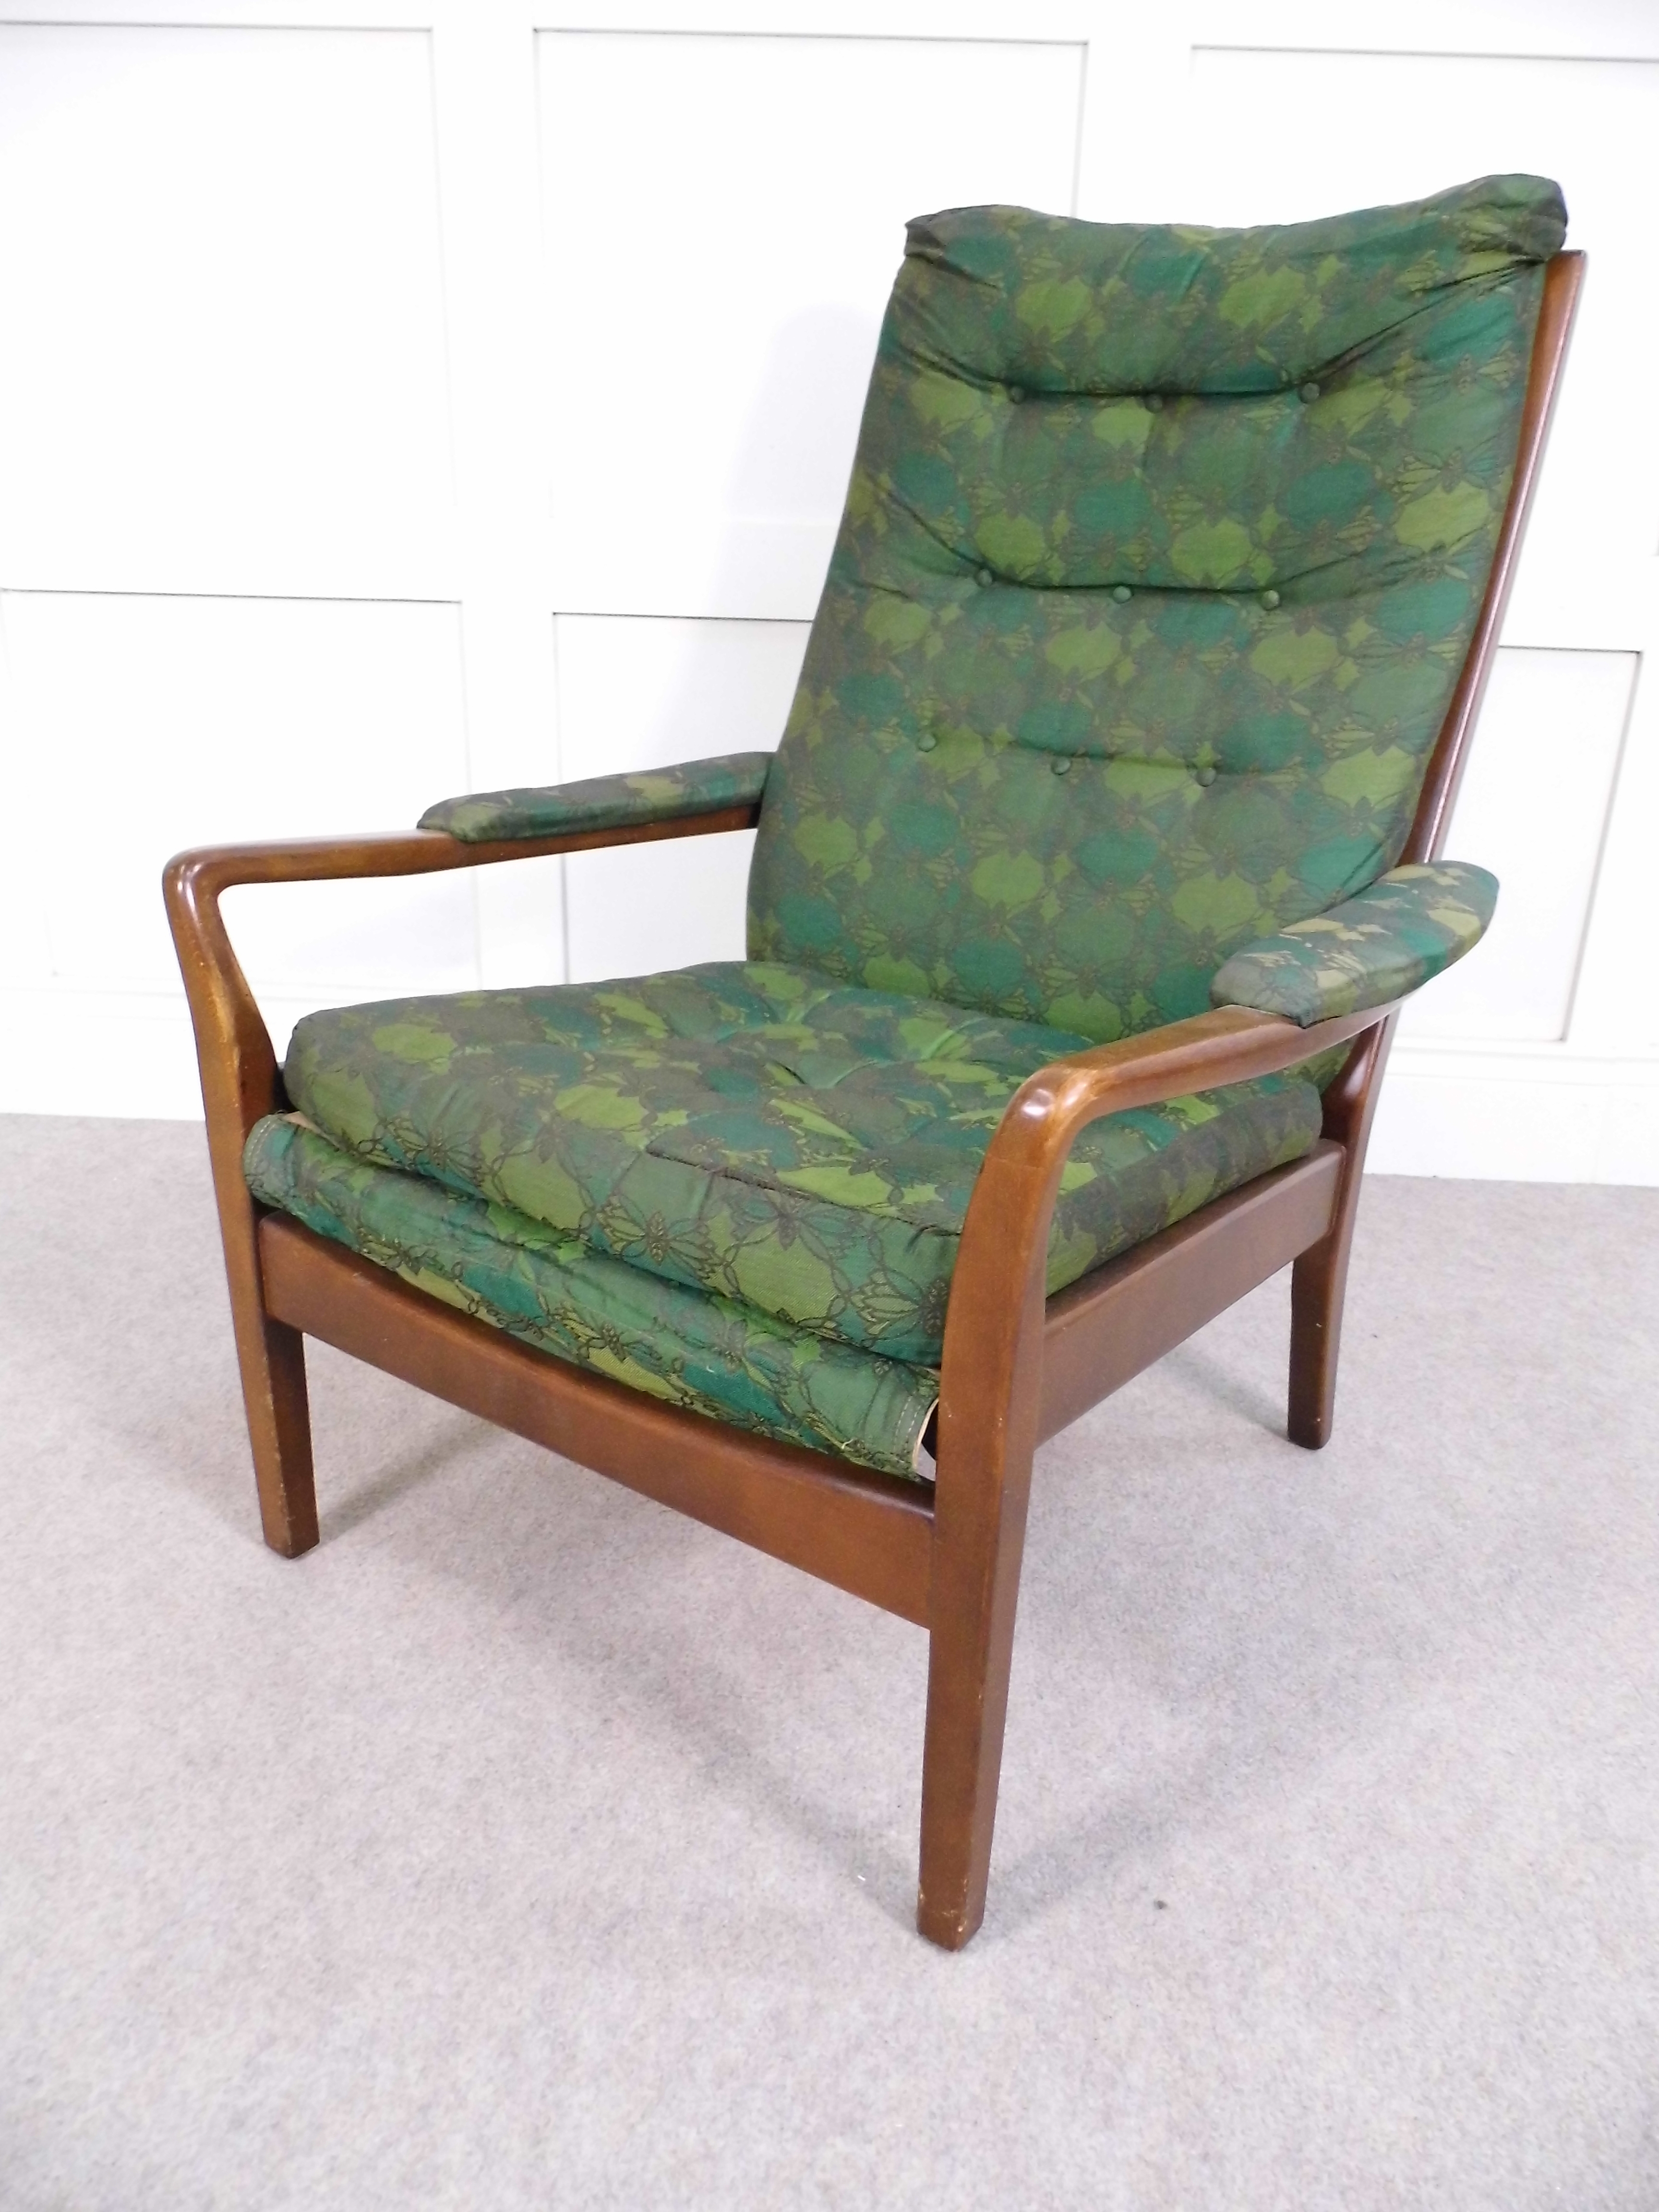 Wonderful Unique Cintique Chair Covers With Regard To Vintage Retro 1959 Cintique C5 Deluxe Group Chair Mid Century (Image 15 of 15)